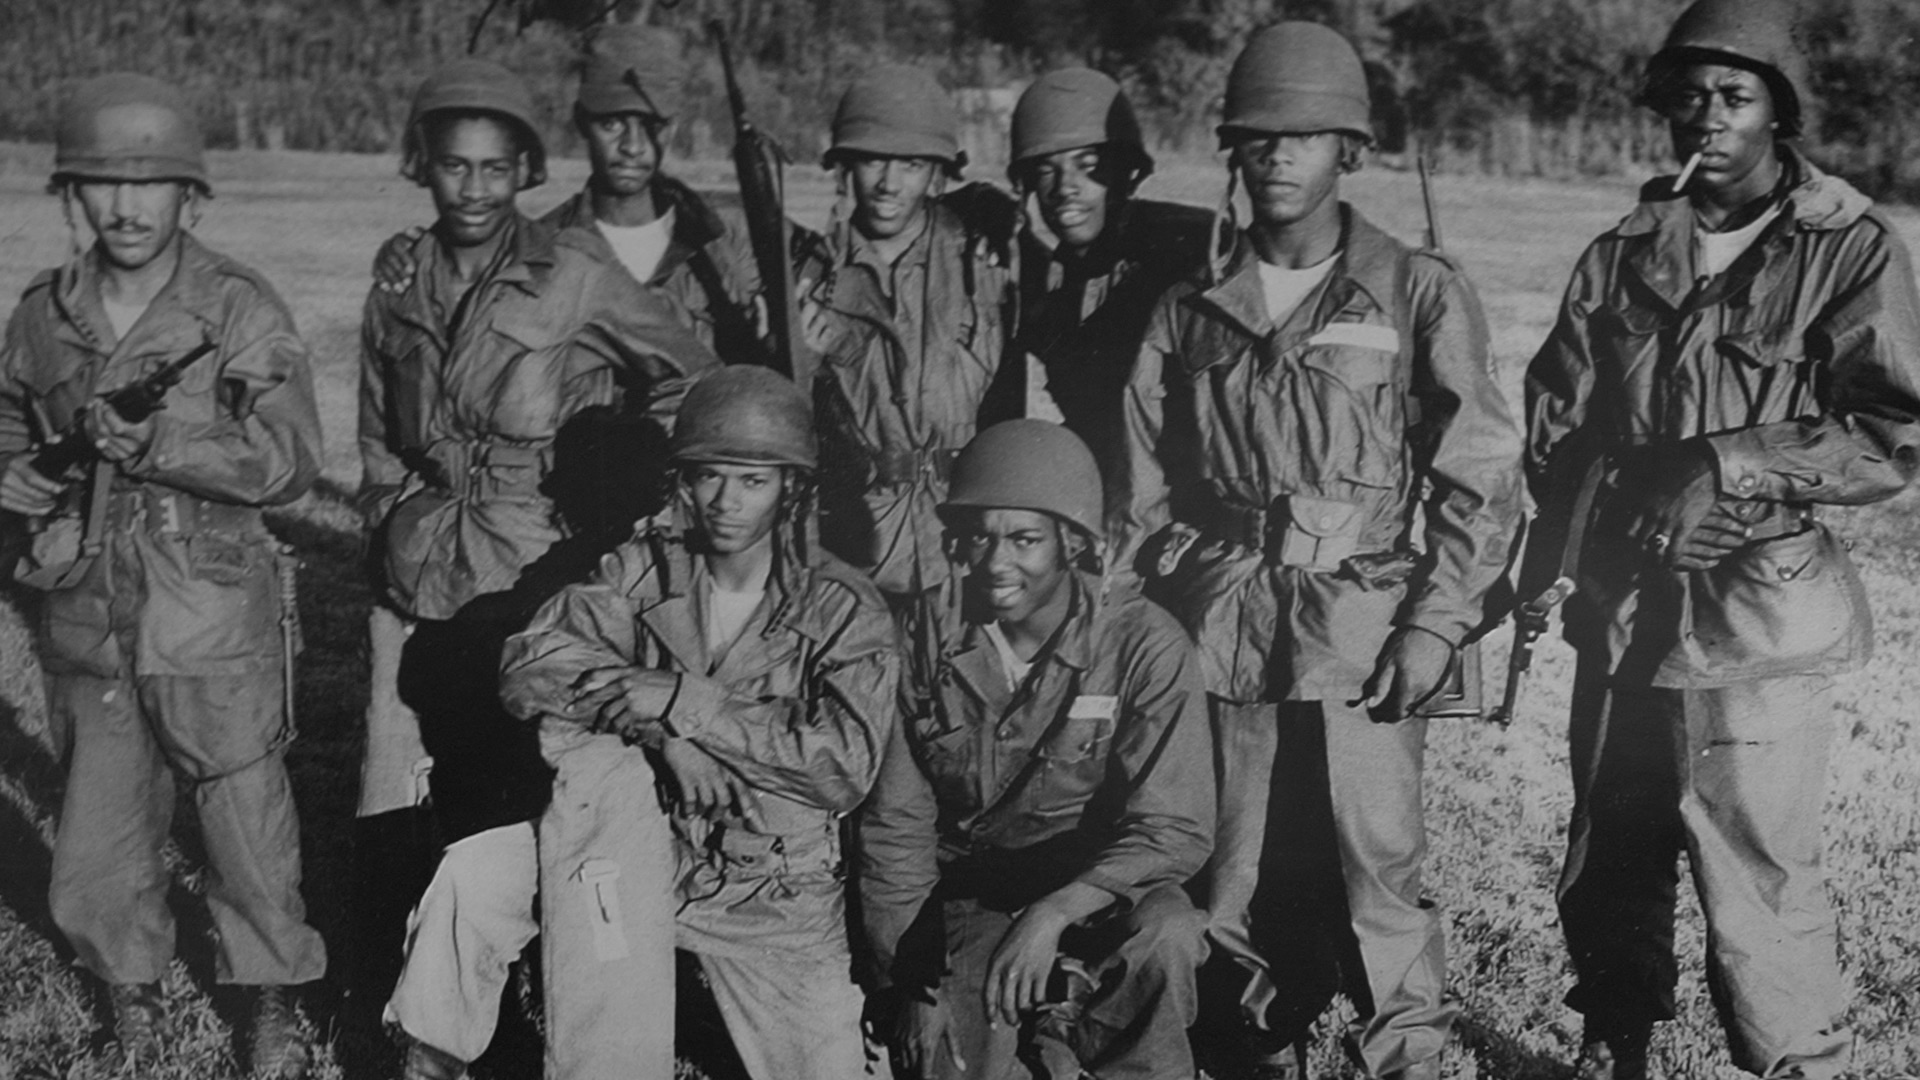 The 2nd Airborne Ranger Company